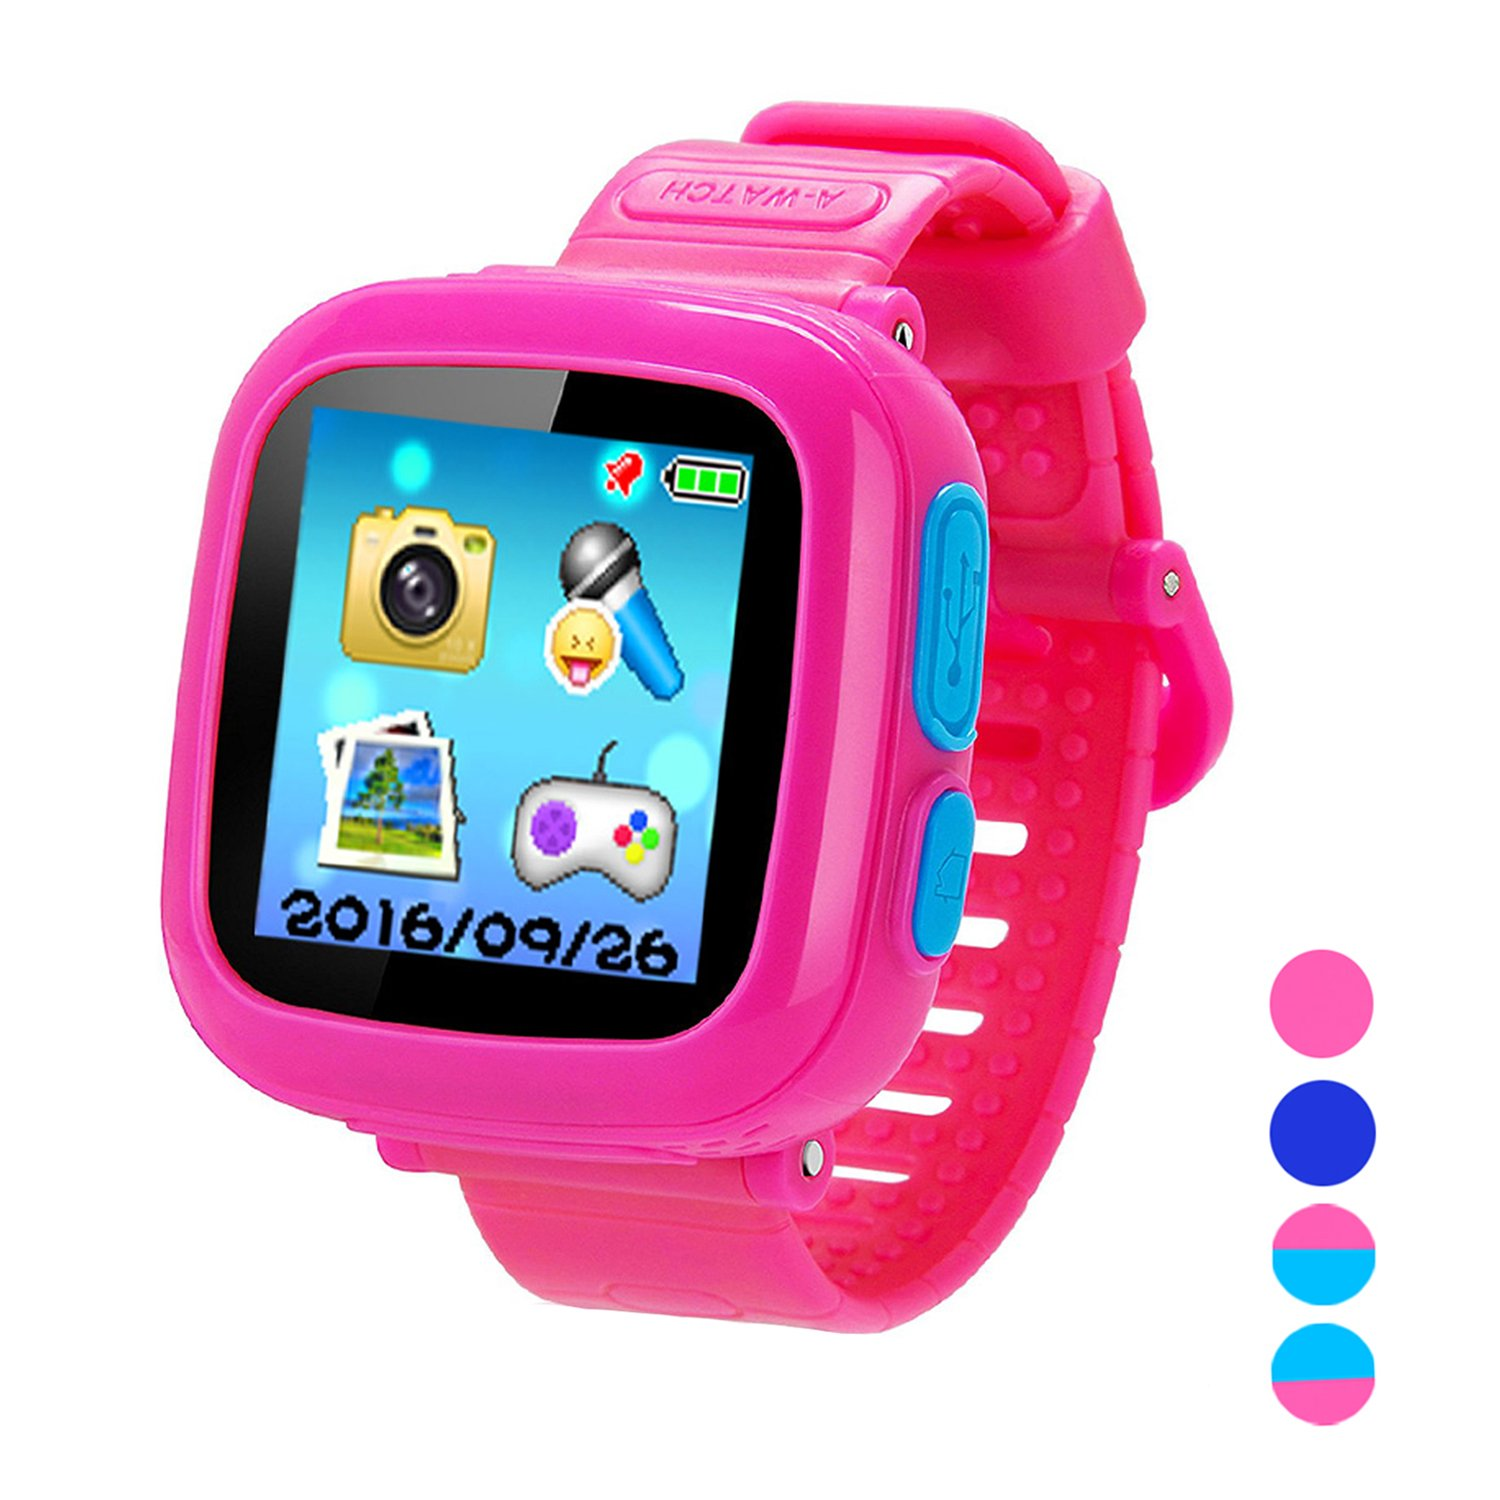 Smart Watch for Kids Girls Boys,Smart Game Watch with Camera Touch Screen Pedometer,Kids Smart Watch Perfect Holiday Birthday Toys Gifts (Pink)